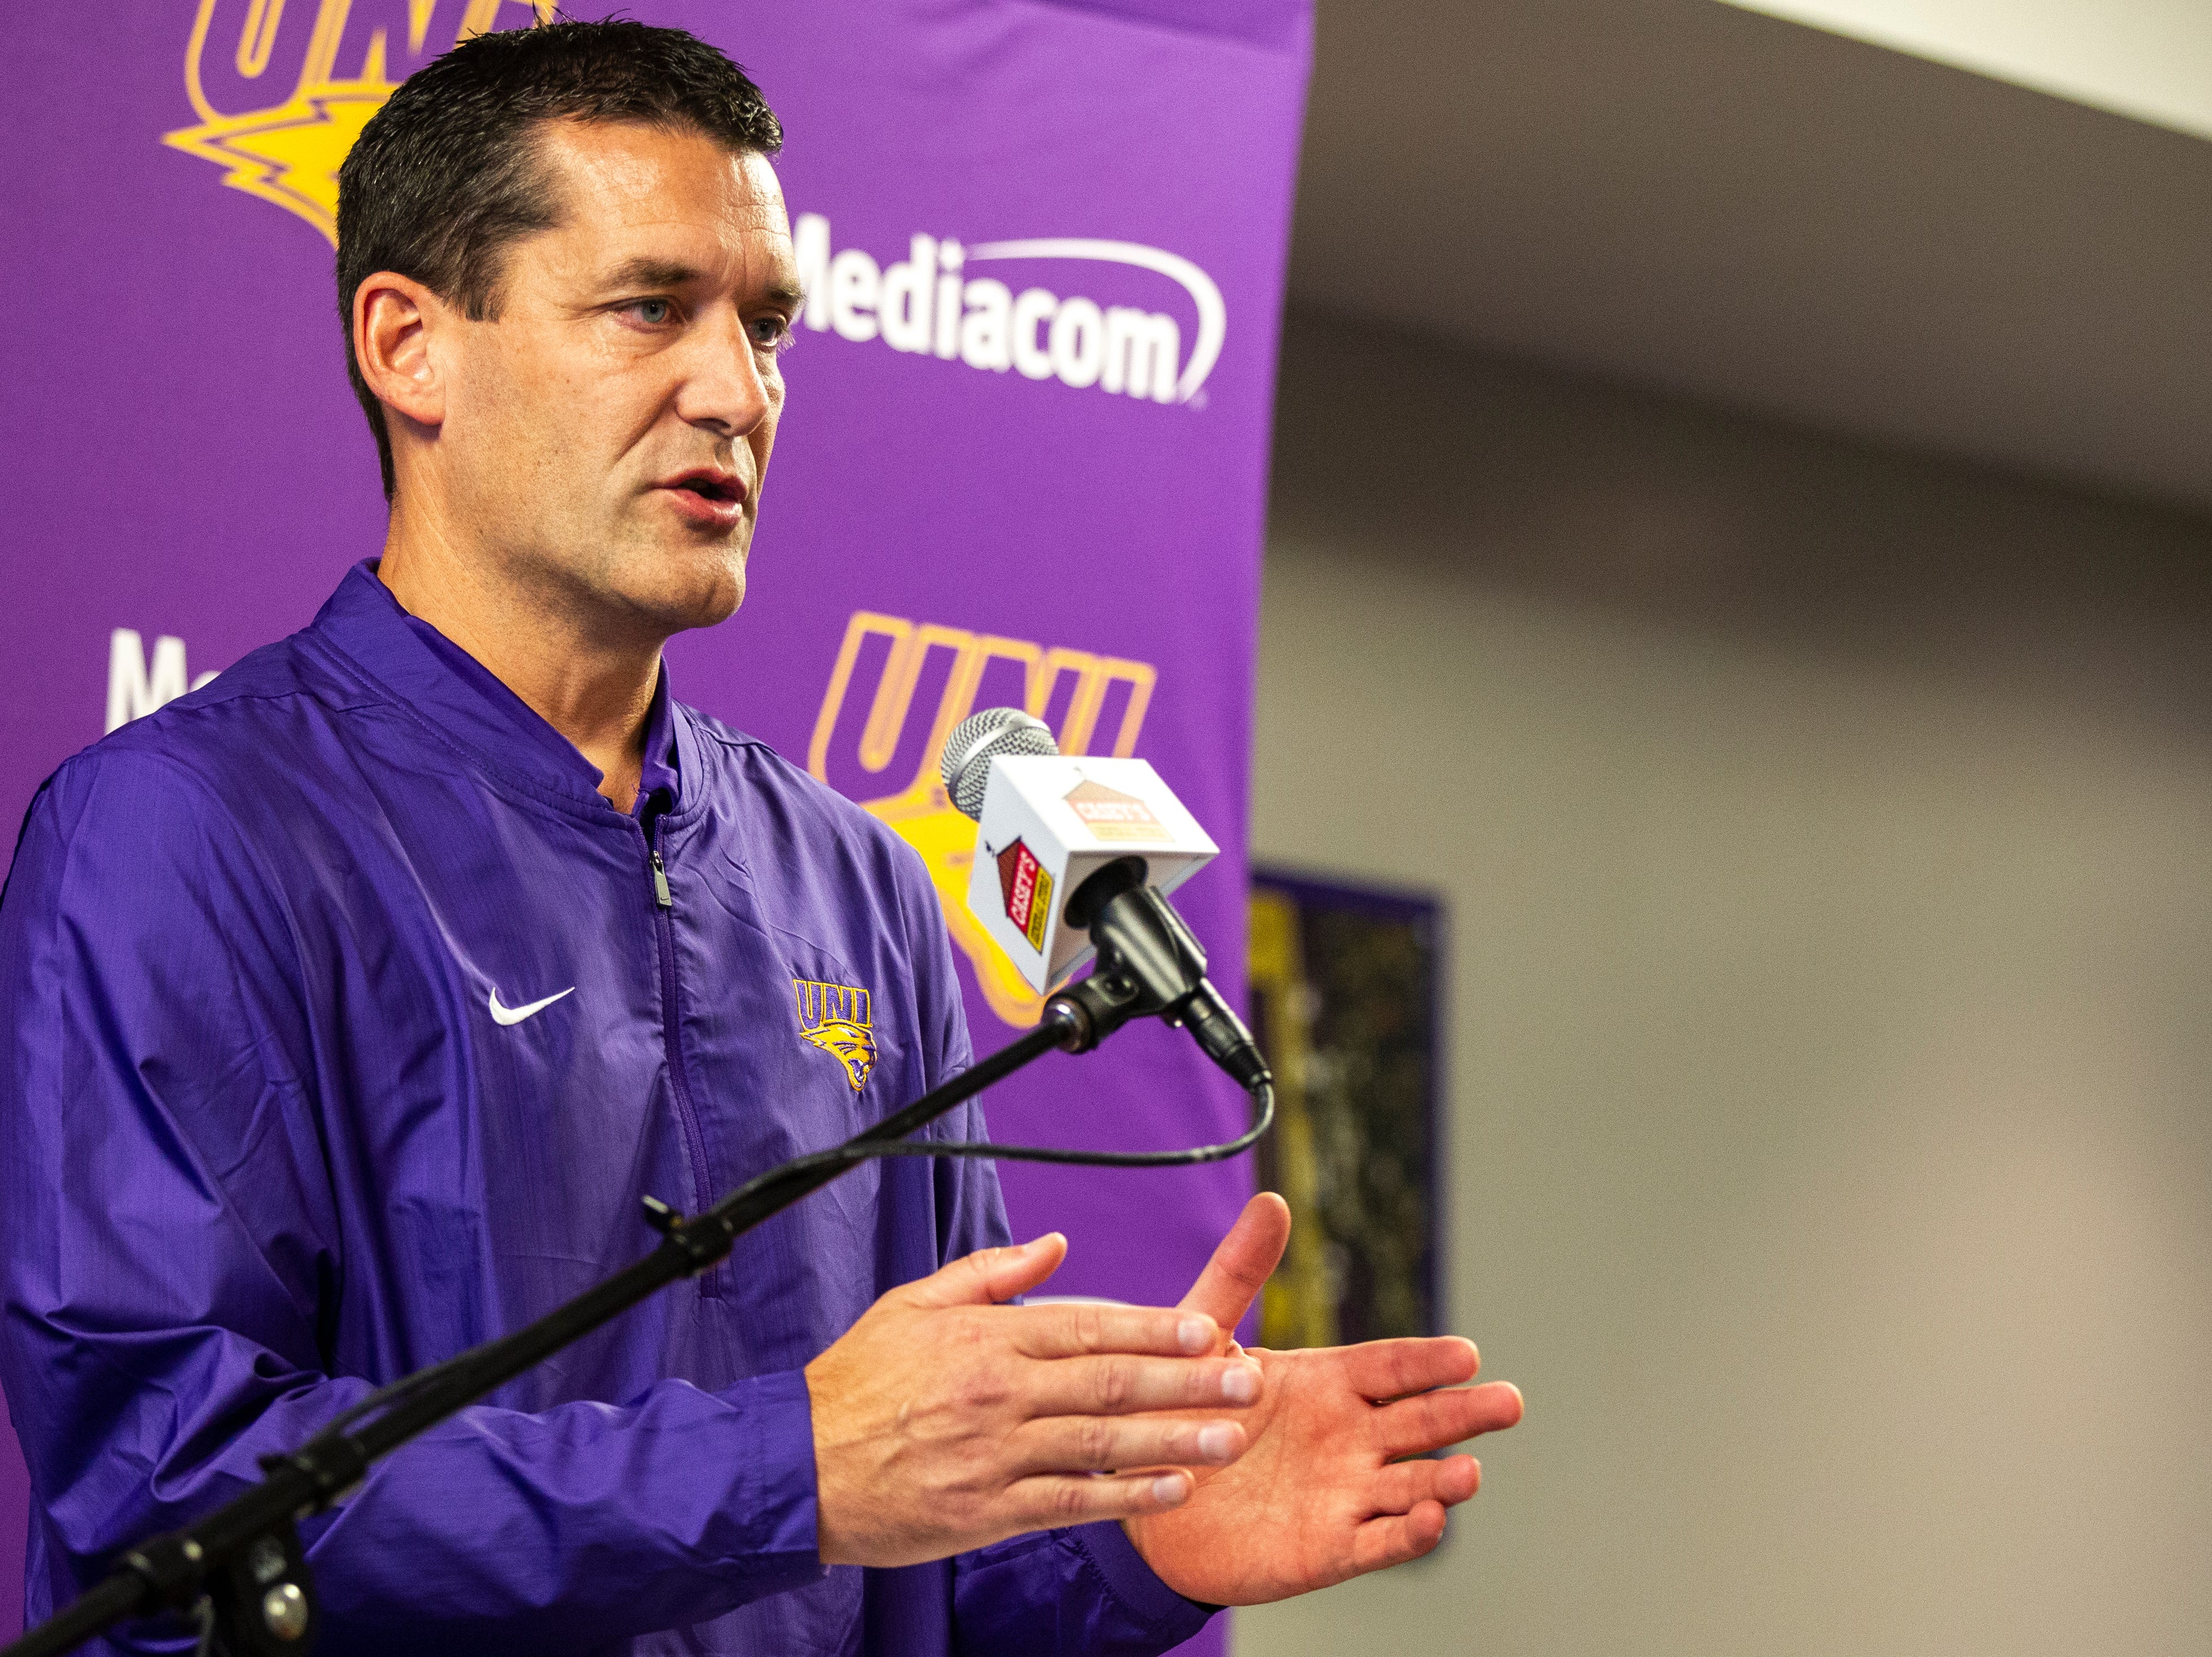 Northern Iowa head coach Ben Jacobson talks to reporters during Panthers men's basketball media day on Wednesday, Oct. 17, 2018, at the McLeod Center in Cedar Falls.